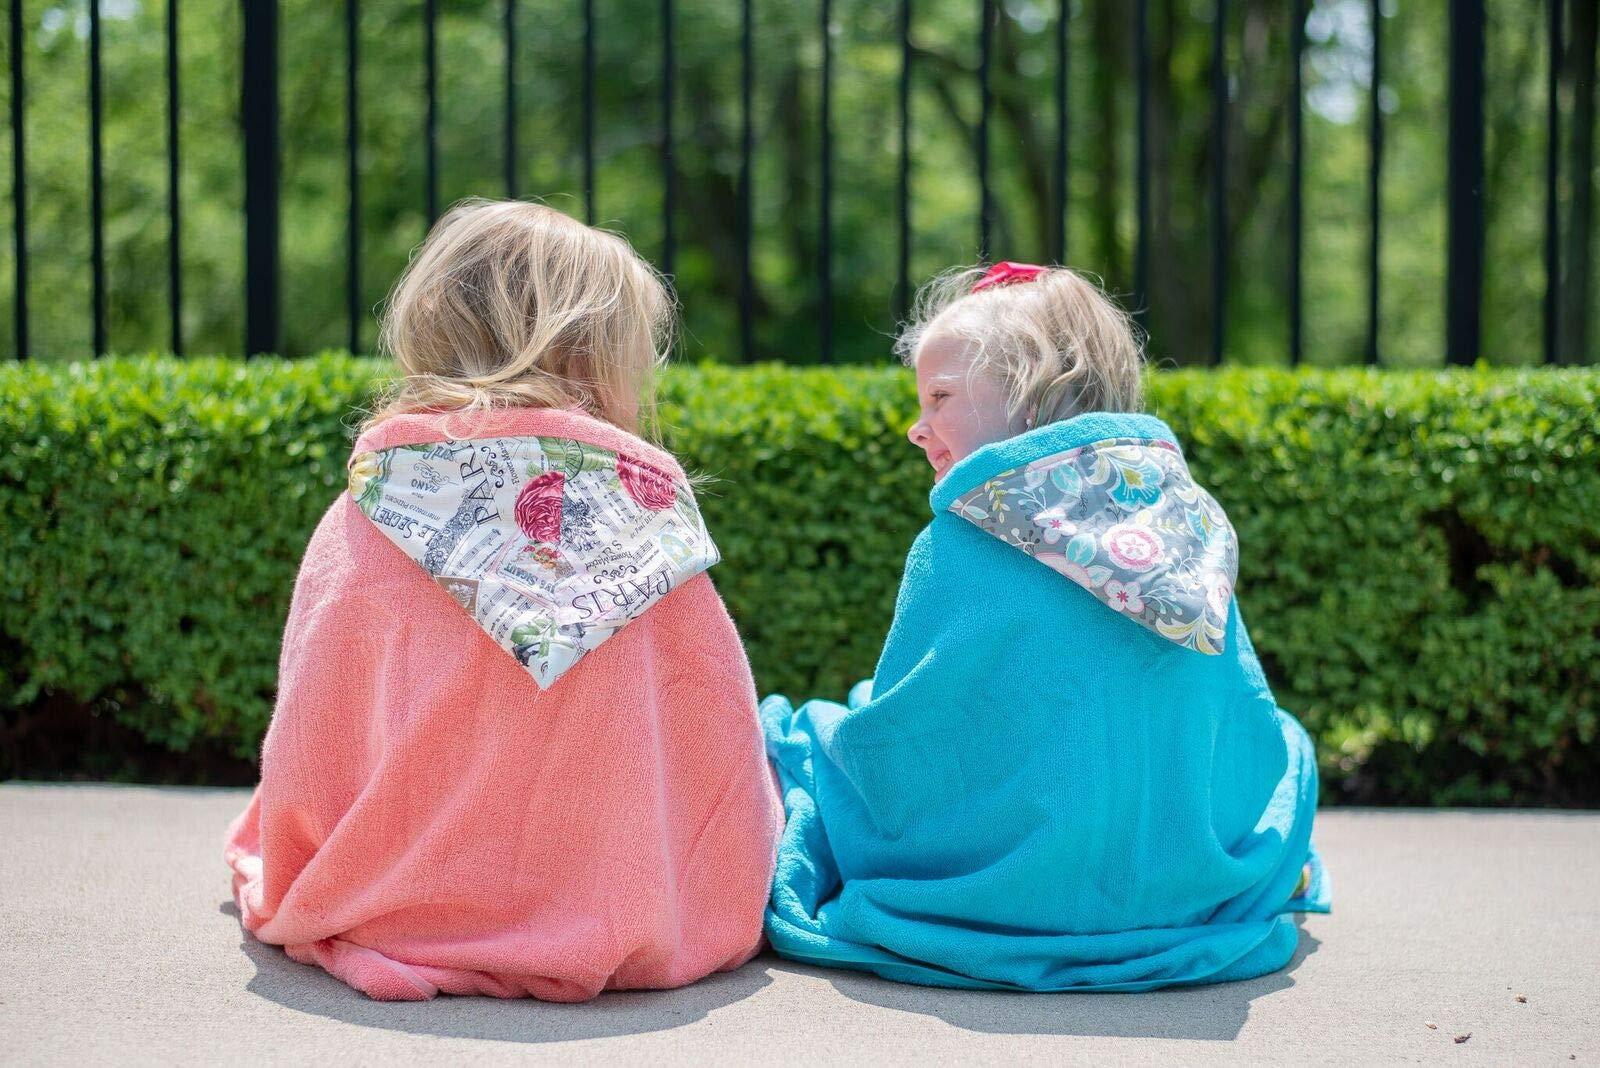 Outdoor Fun Hooded Towels ✱ Age 0-10 Years ✱ Infant, Toddler, and Big Kids ✱ Bath, Pool, Beach Towel ✱ Extra Large Size 30x54'' ✱ Soft Plush Absorbent ✱ Handmade in USA (Soccer Blue, Cotton)